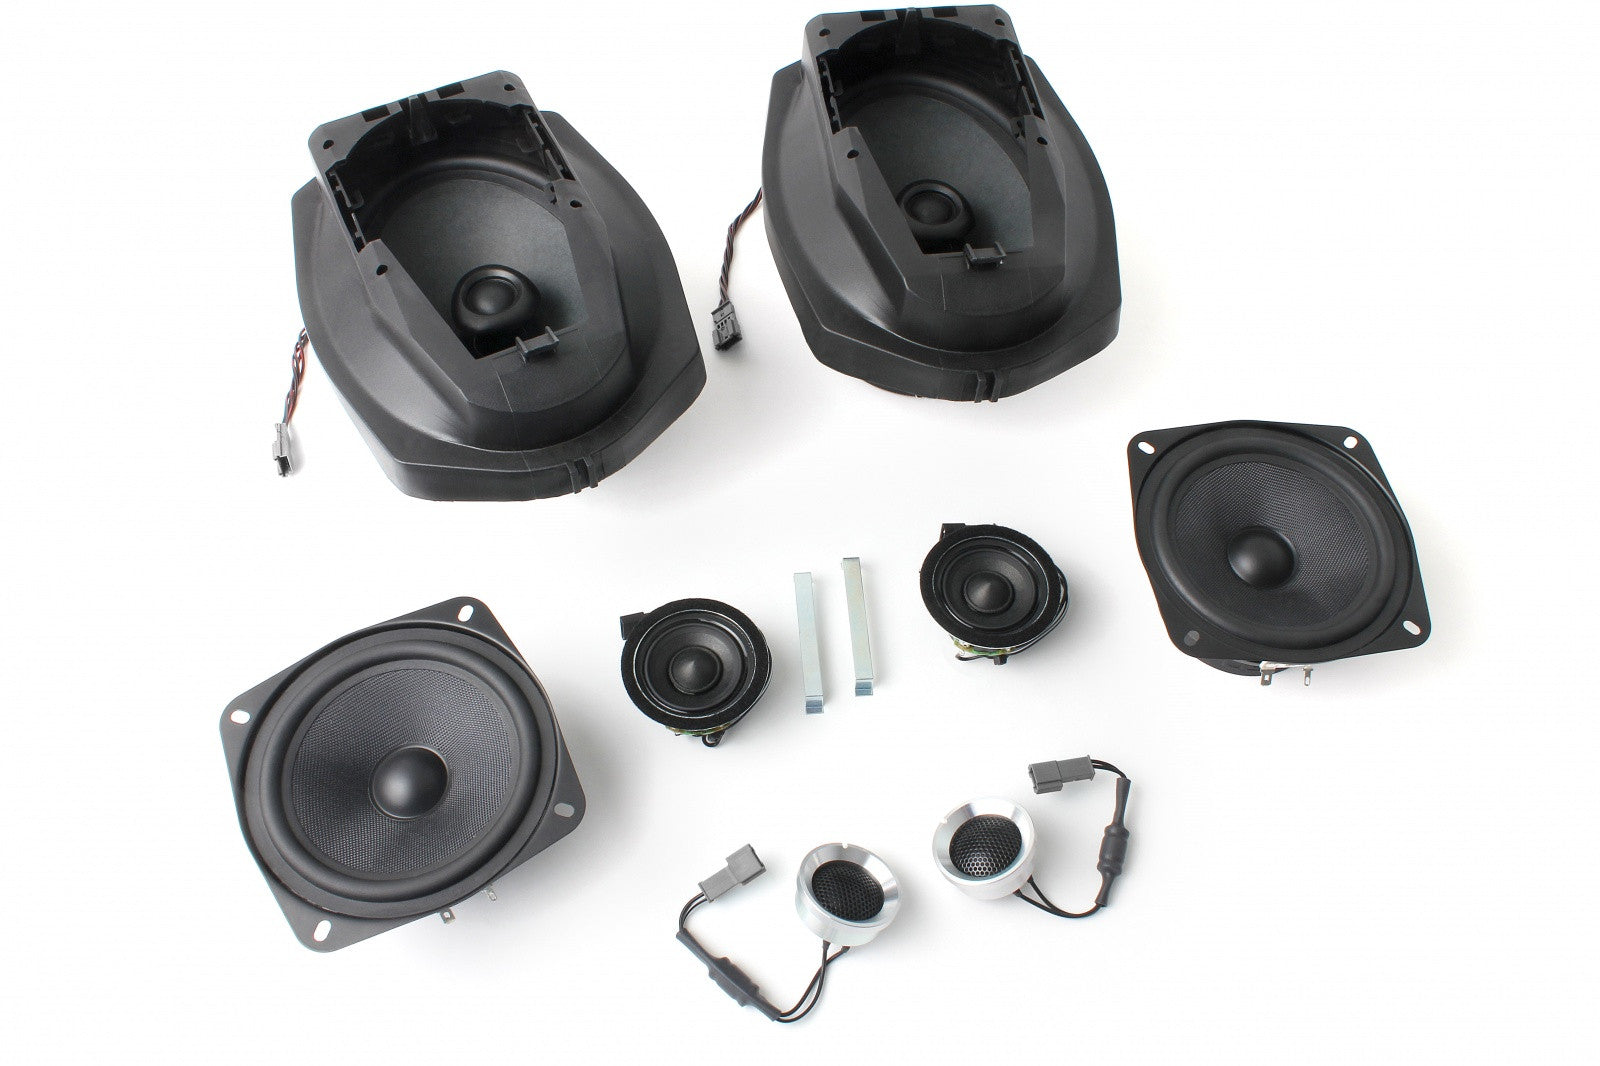 BMW Speaker Upgrade for 1996-1999 E36 Coupe/Sedan with Standard Hi-Fi